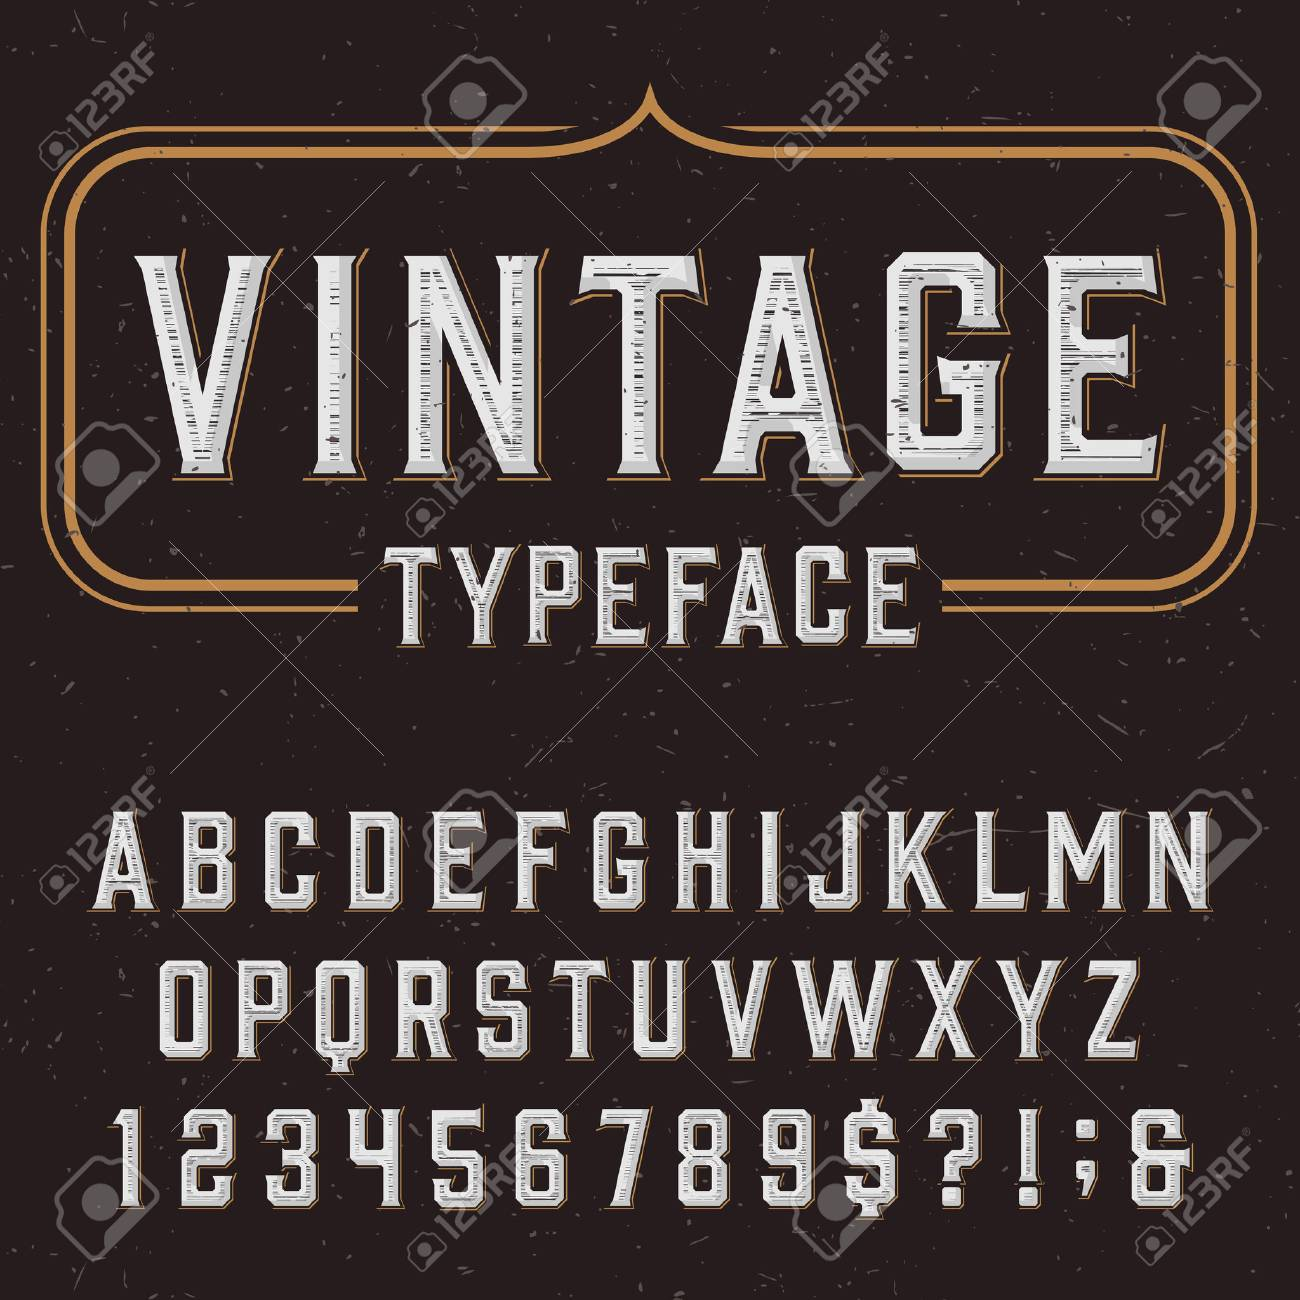 Retro vector typeface. Type letters, numbers and symbols on a dark distressed background. Alphabet font for labels, headlines, posters etc. - 49126614